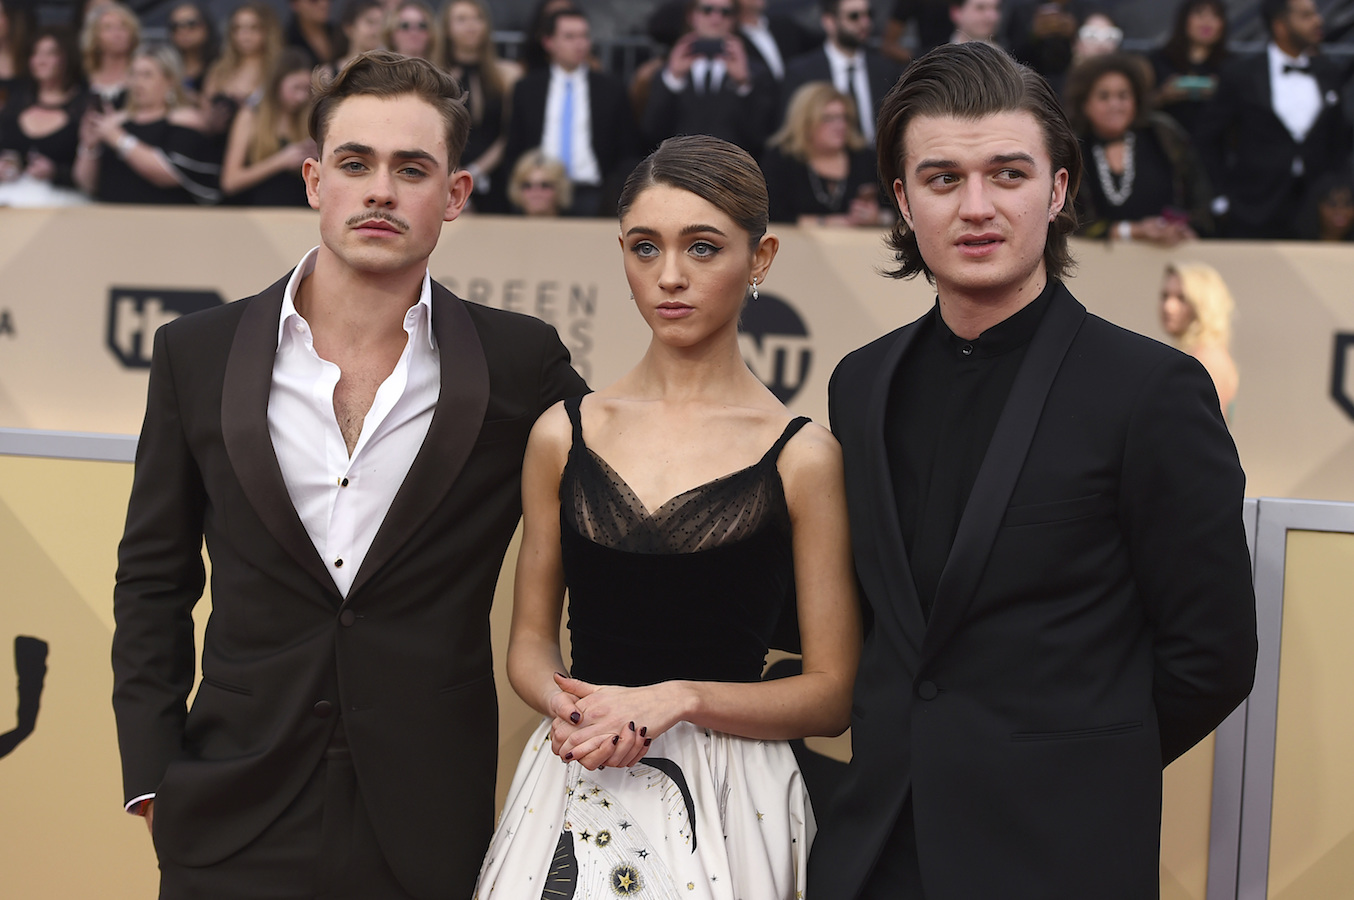 <div class='meta'><div class='origin-logo' data-origin='AP'></div><span class='caption-text' data-credit='Jordan Strauss/Invision/AP'>Dacre Montgomery, from left, Natalia Dyer, and Joe Keery arrive at the 24th annual Screen Actors Guild Awards at the Shrine Auditorium & Expo Hall on Sunday, Jan. 21, 2018.</span></div>